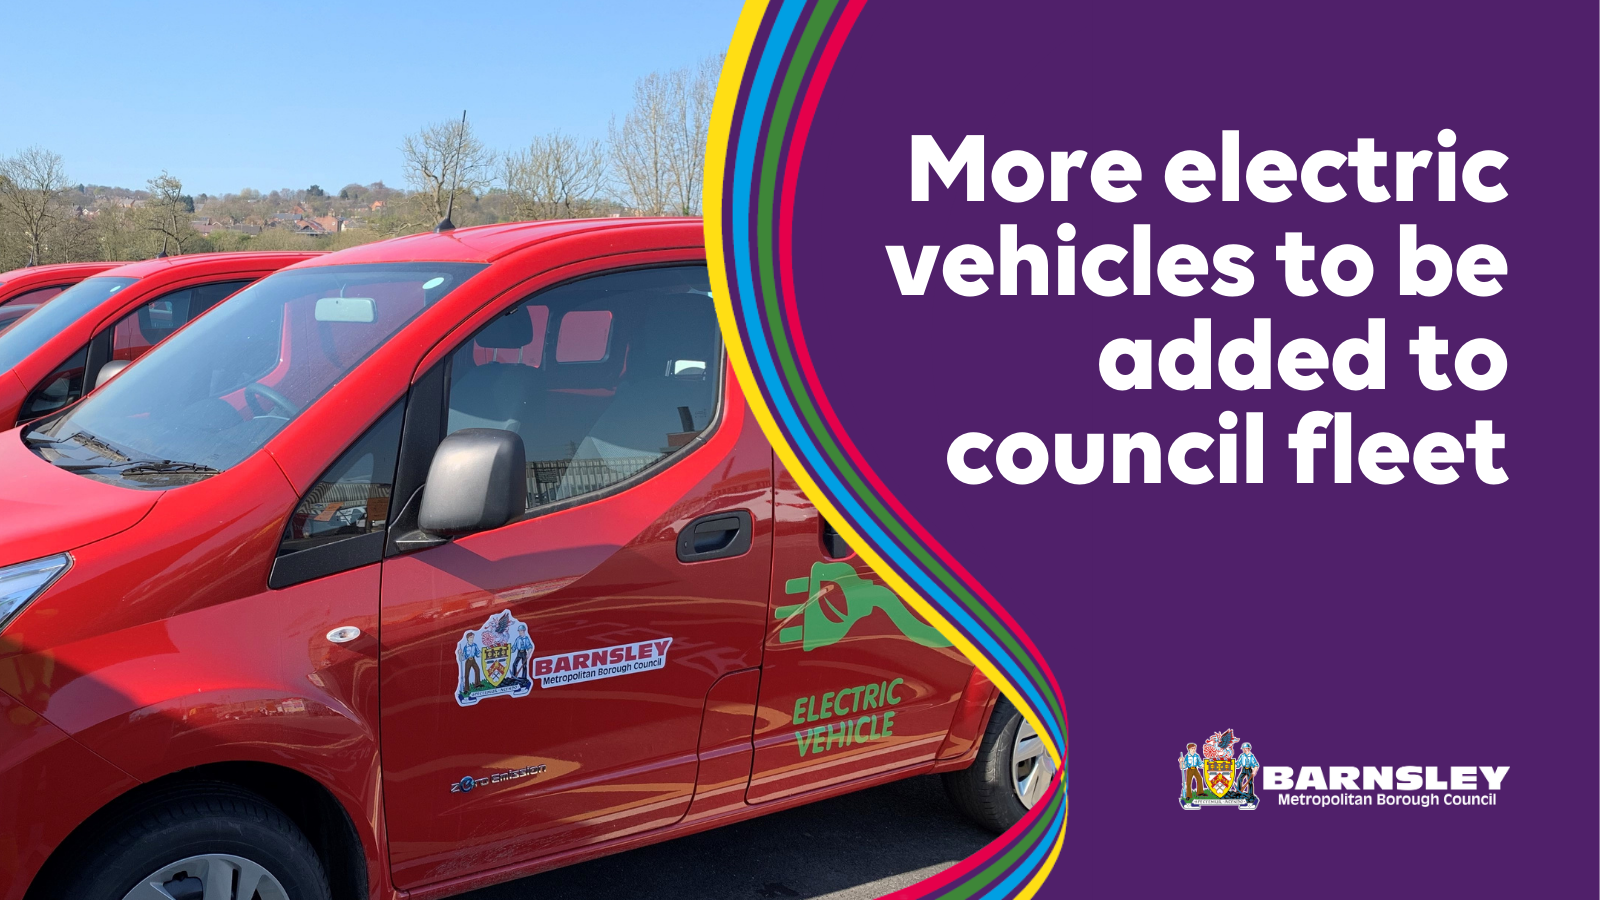 More electric vehicles to be added to council fleet